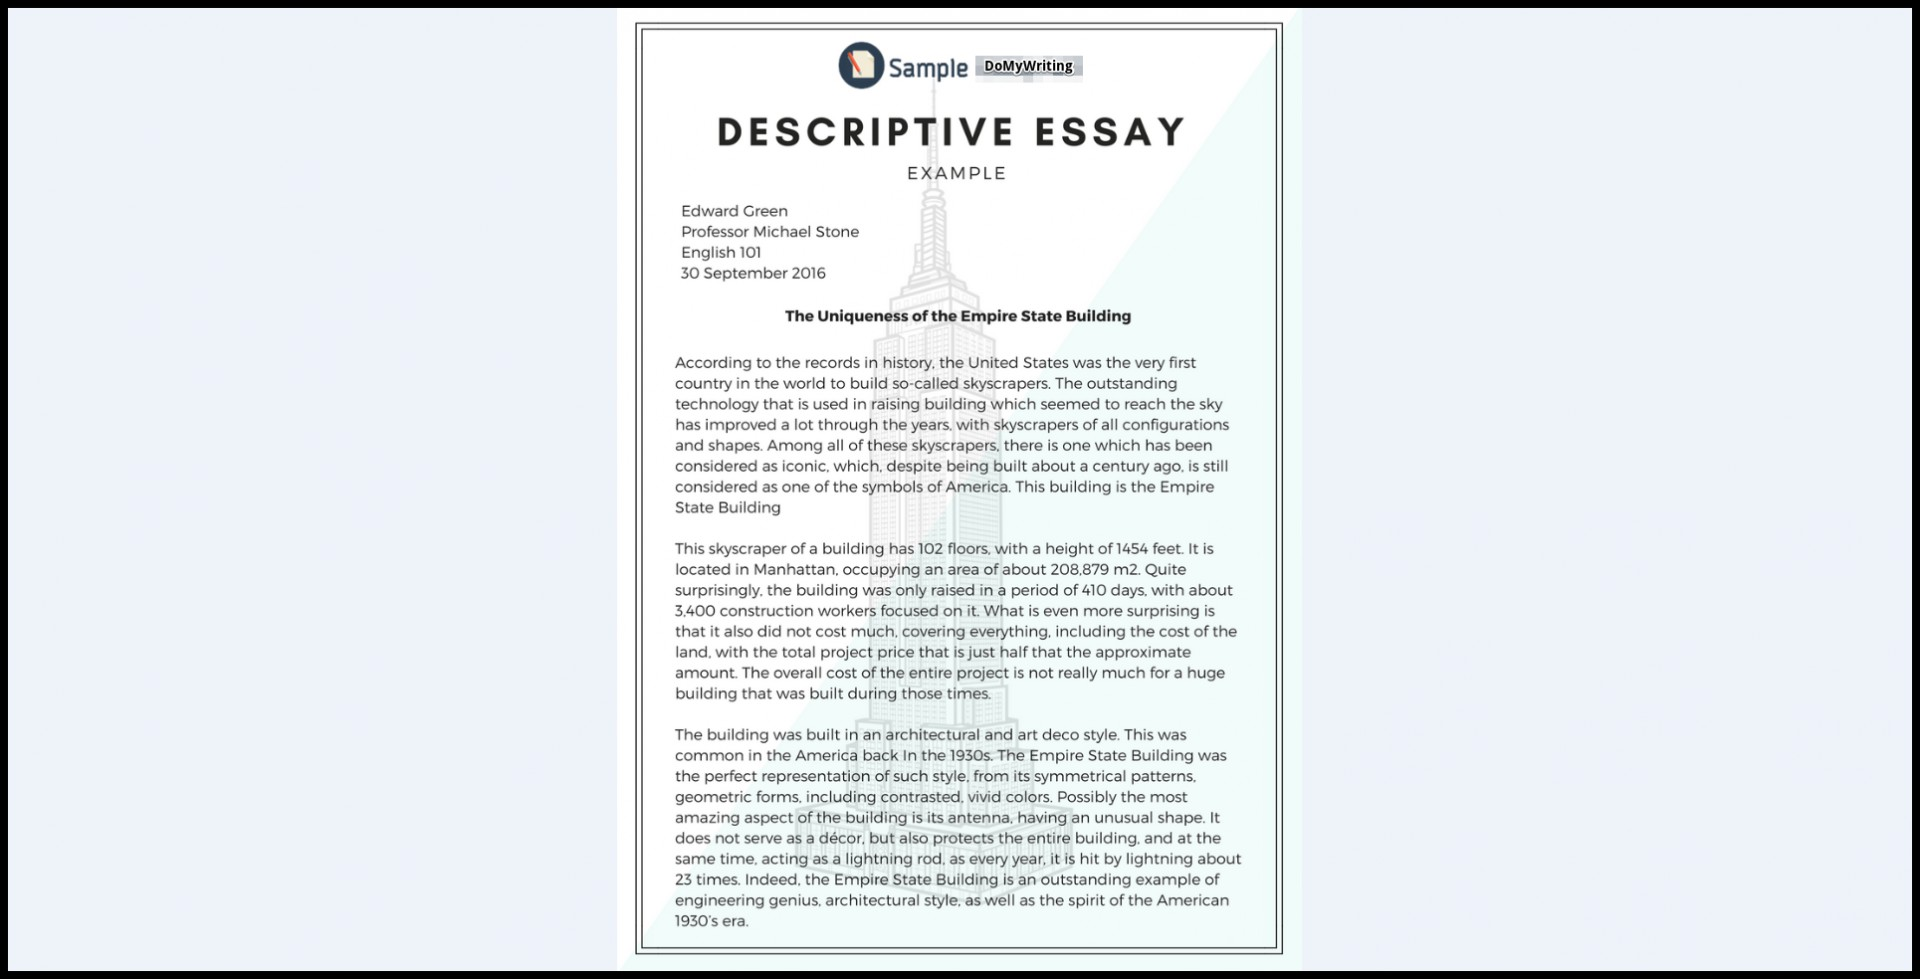 005 Essay Example Descriptive Impressive Writing Definition Wikipedia Format Ppt 1920